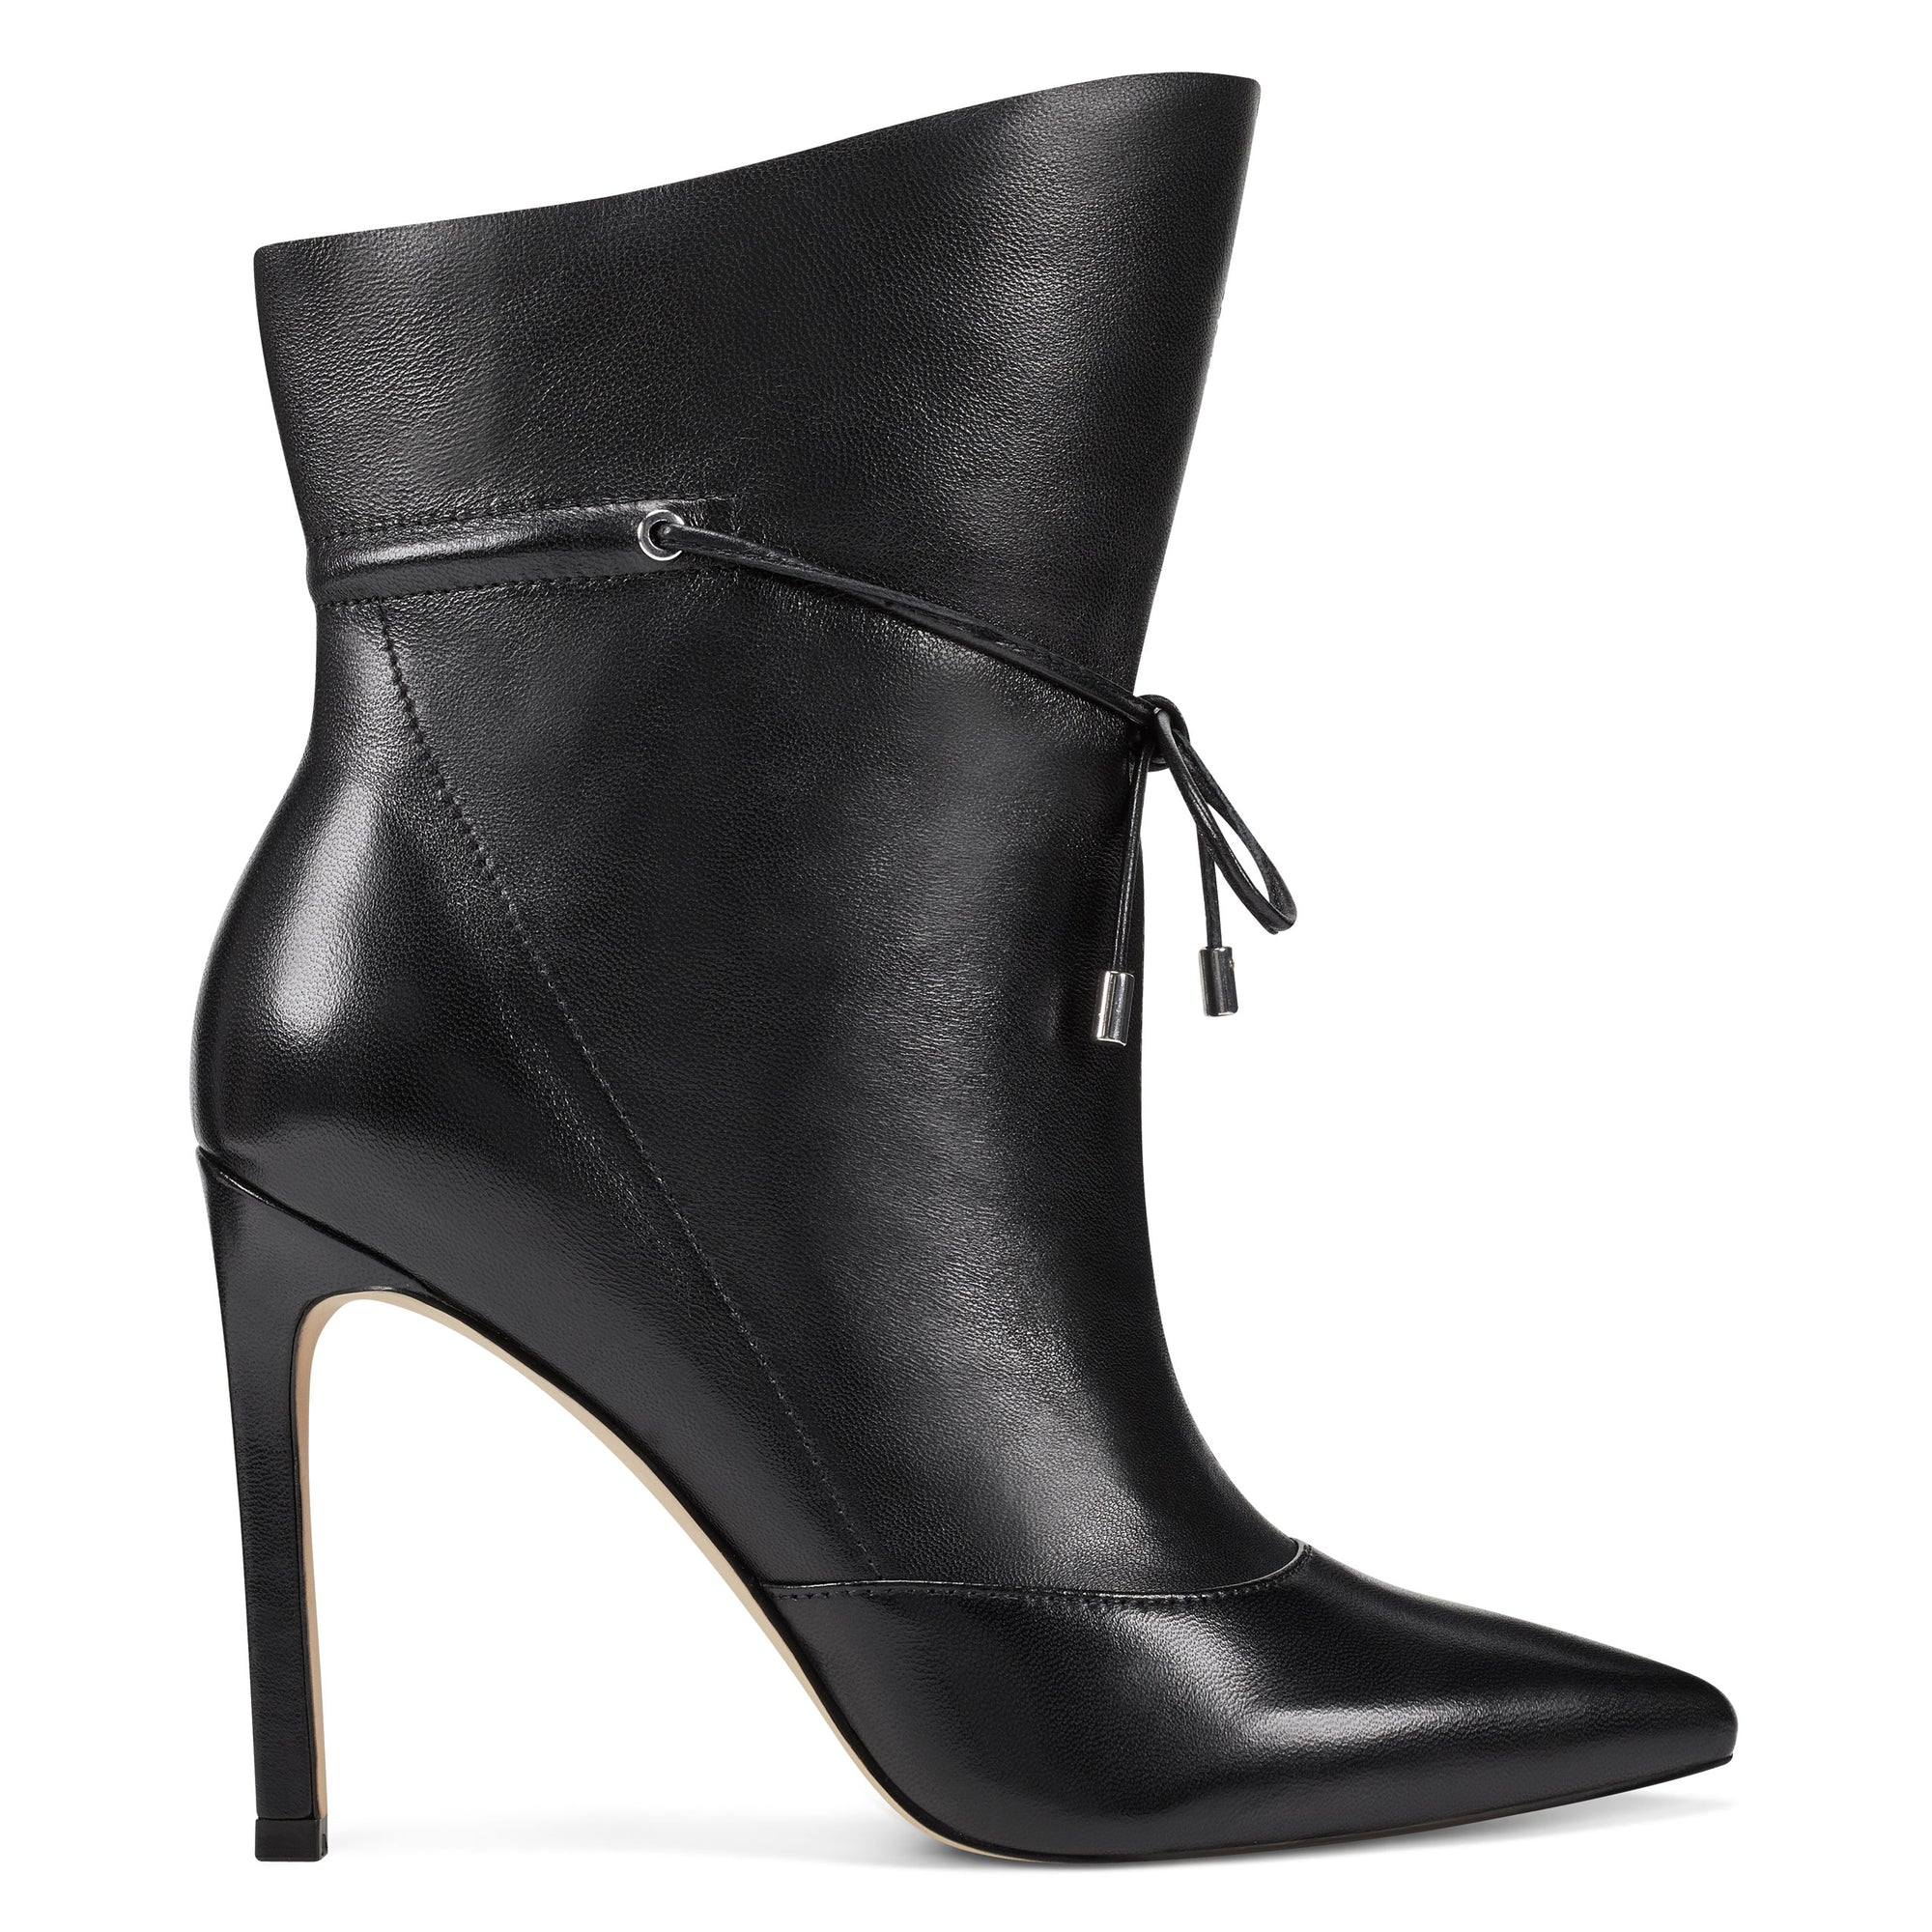 Tirzah Pointy Toe Dress Booties